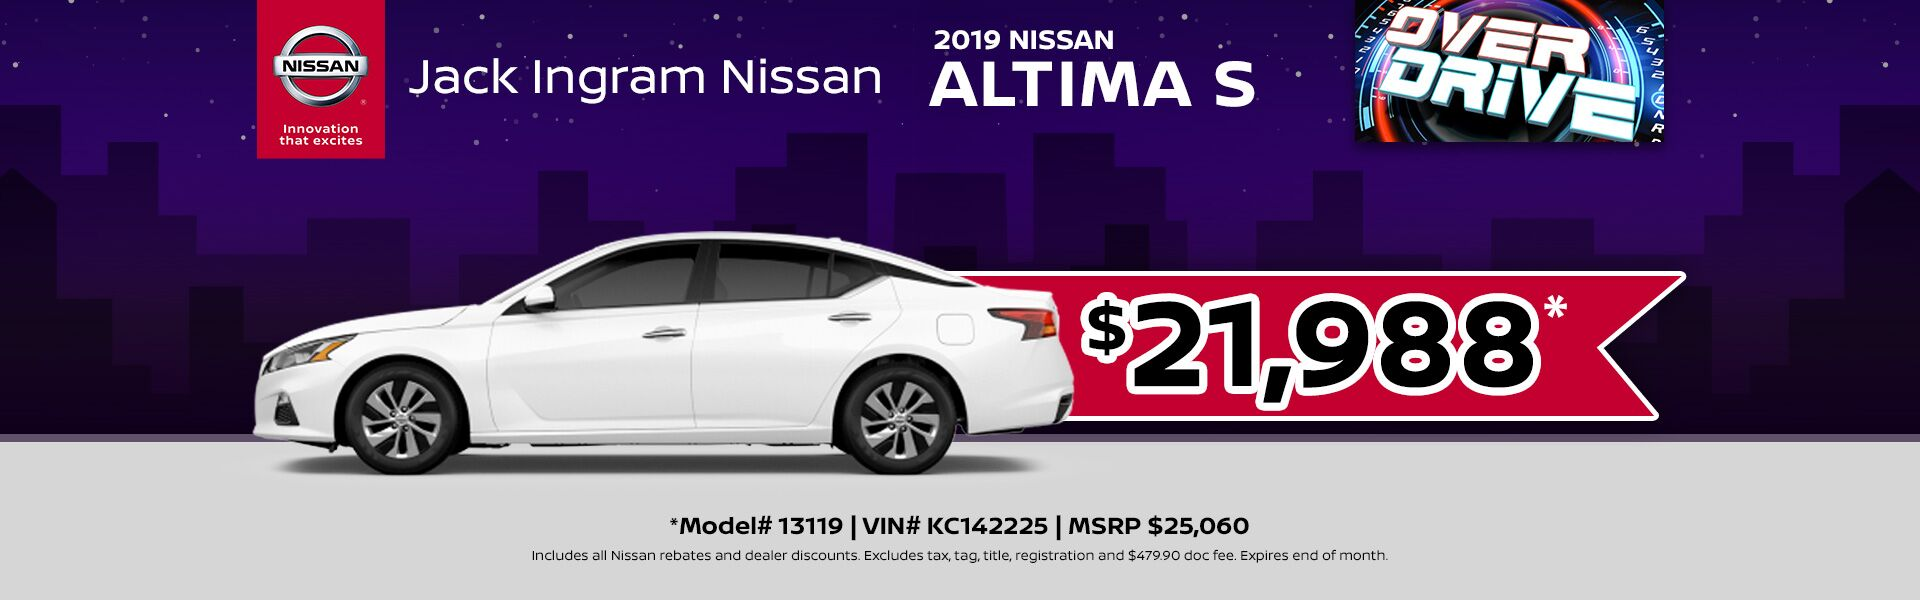 Nissan Jan Altima